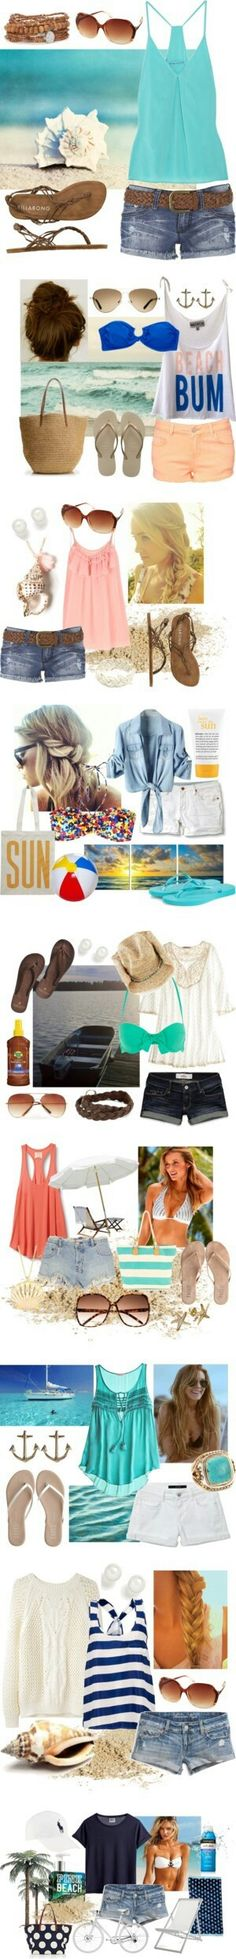 Sally Lee by the Sea Coastal Lifestyle Blog: Saturday Beach Style: Dreaming of…